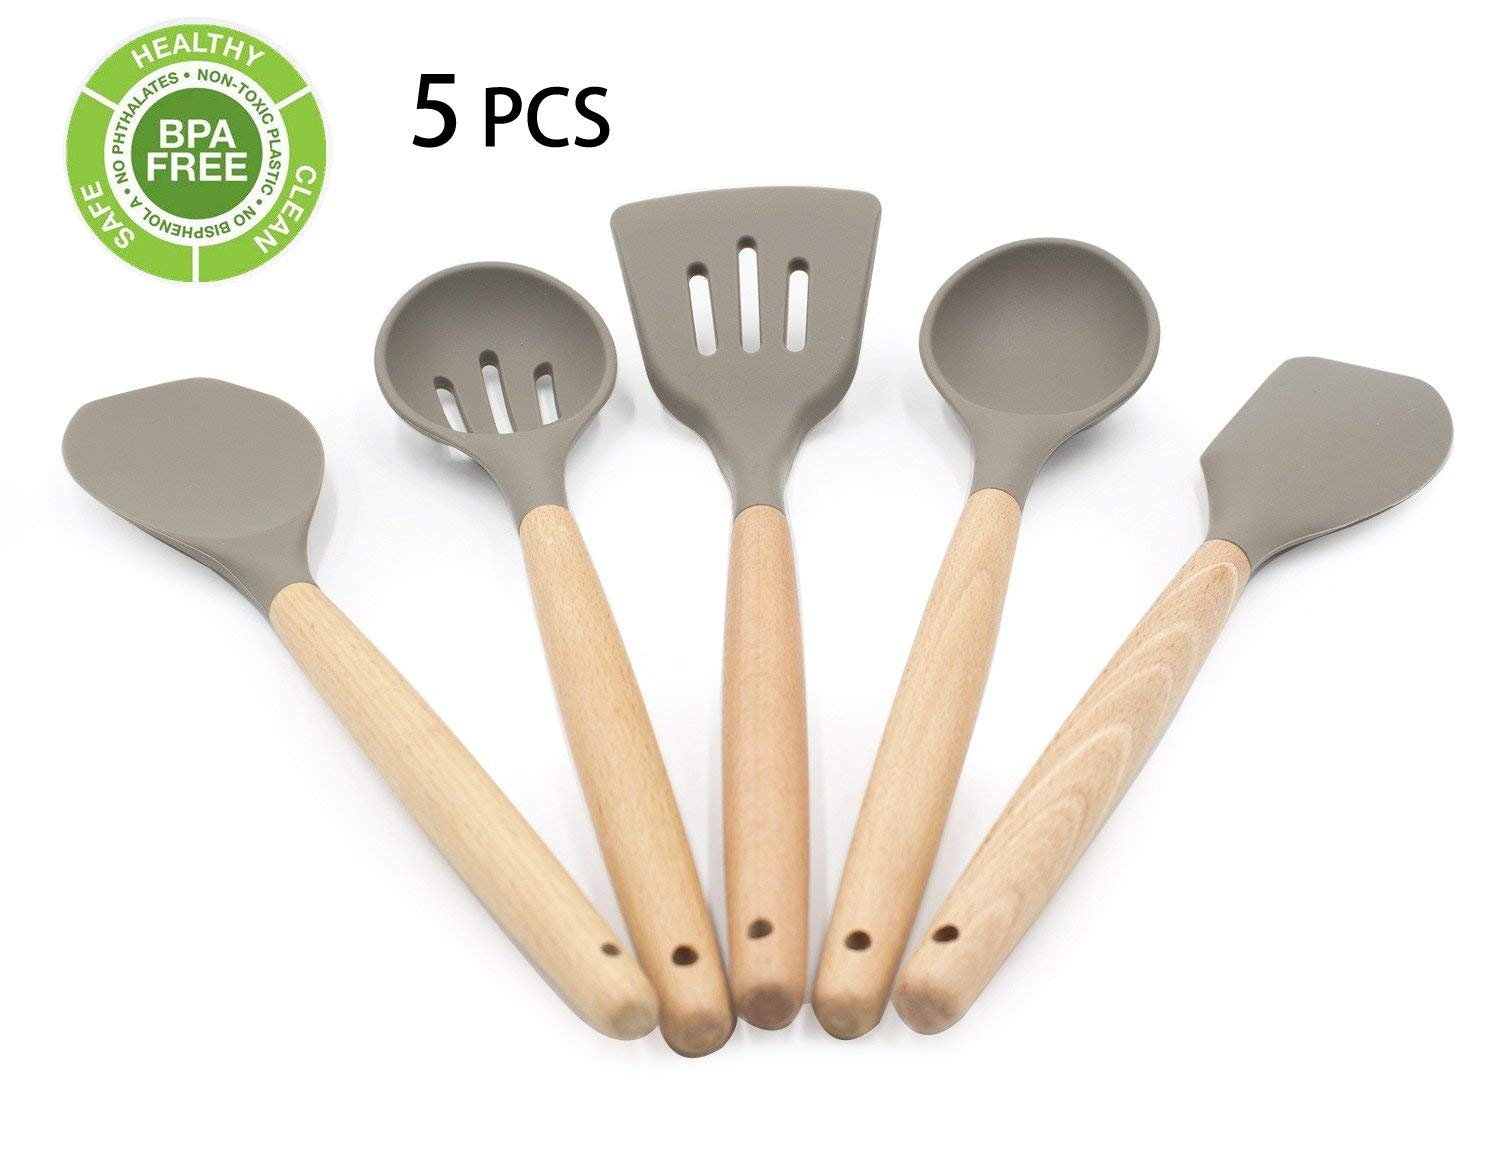 Silicone Cooking Utensil Set Classic 5-Piece Beech Wood & Silicone – Cooking/Pastry Tools for Non-stick Cookware, Brown